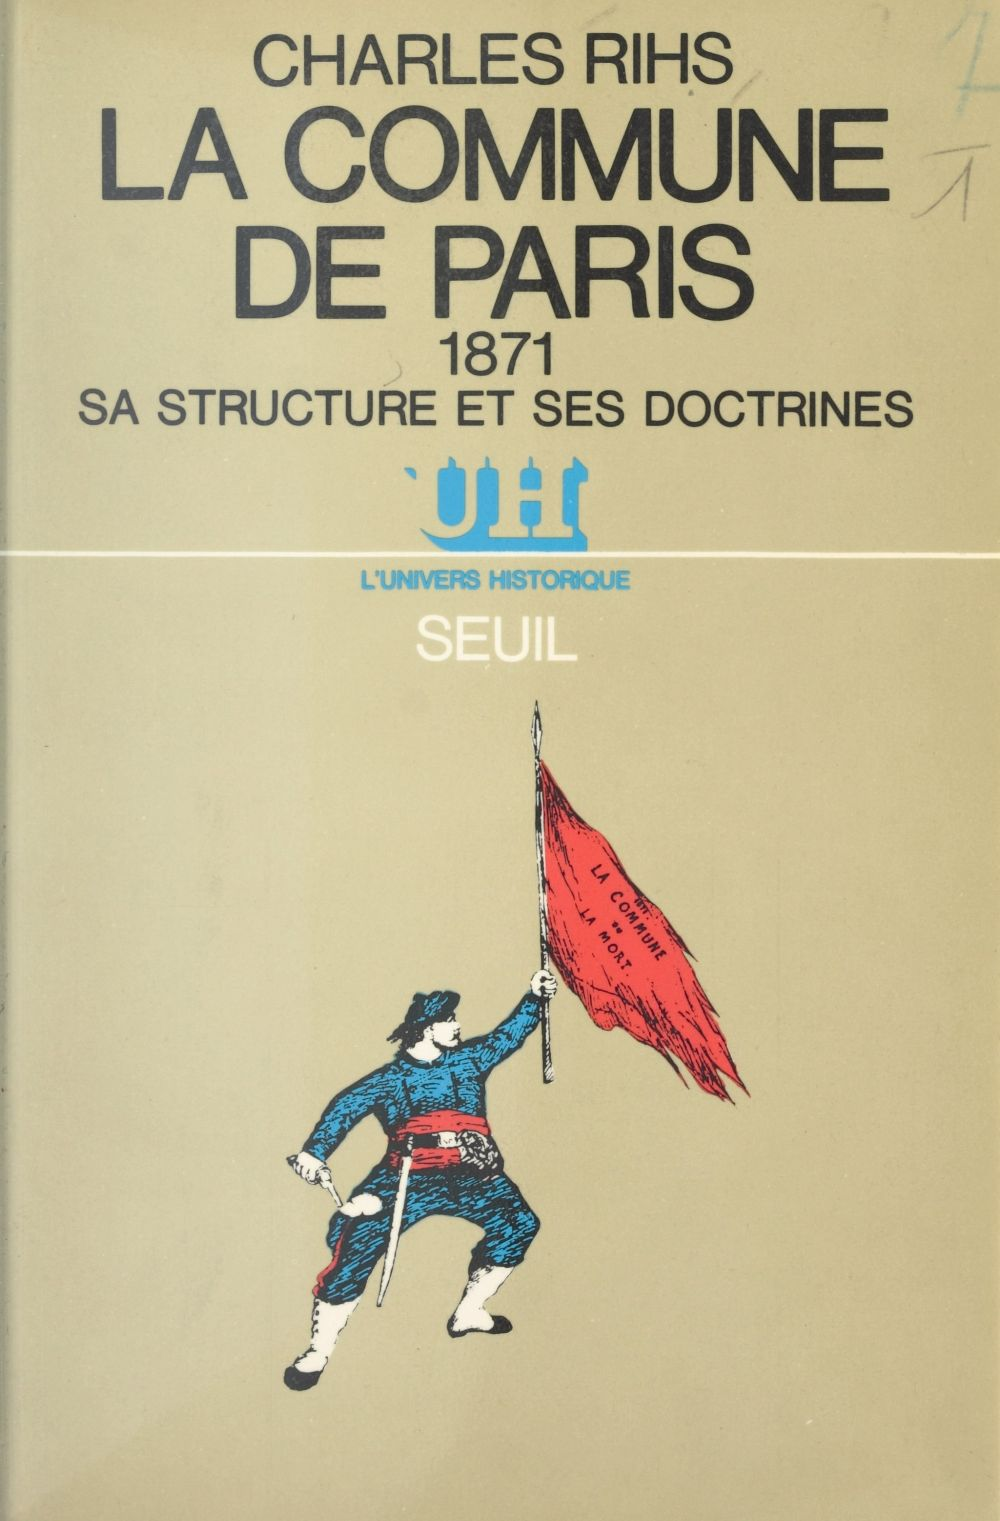 La Commune de Paris, 1871